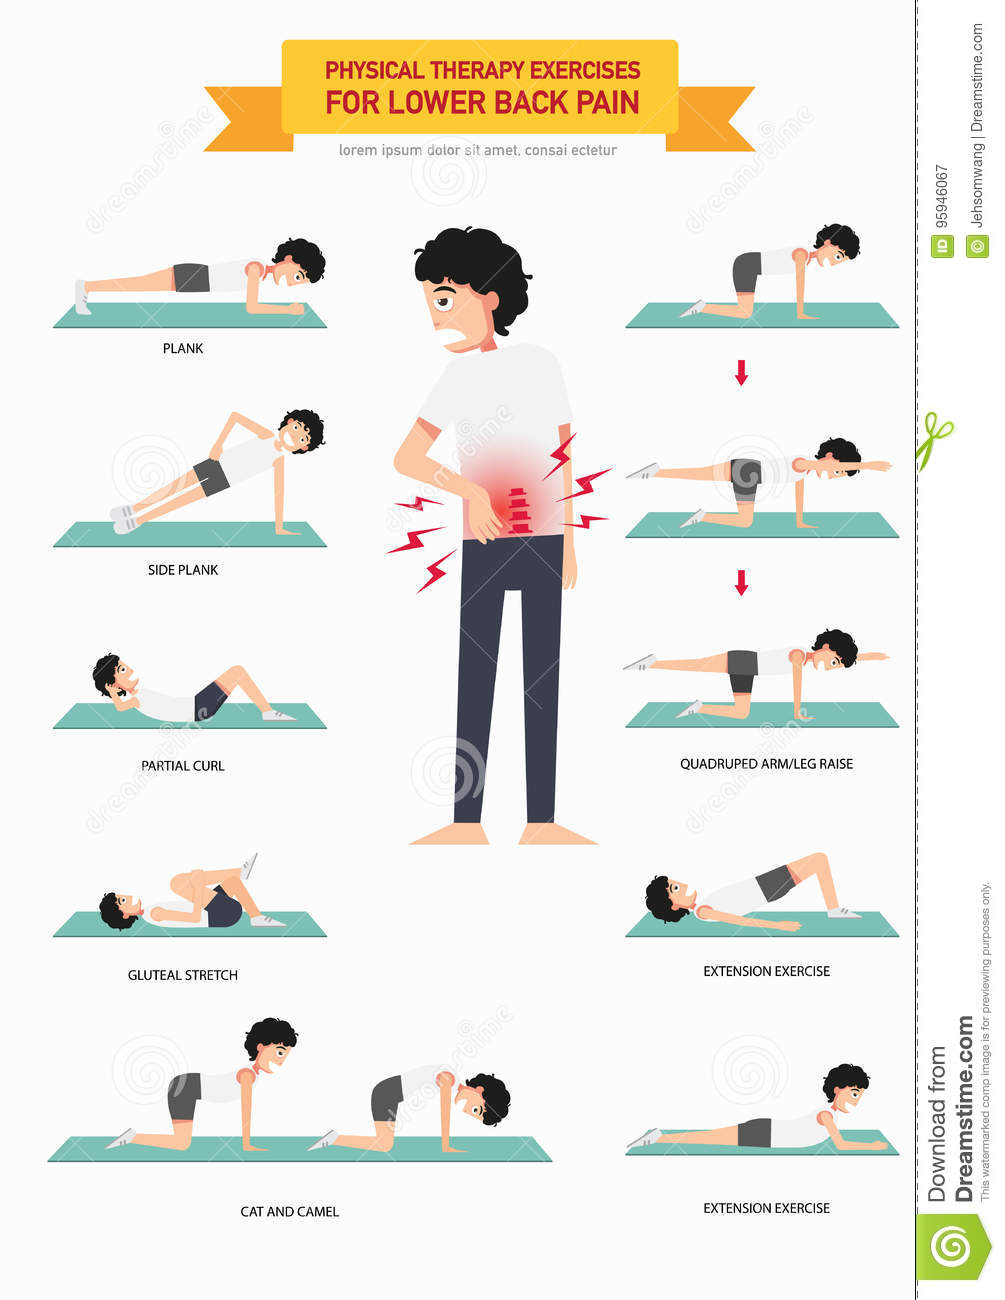 Back exercise lower physical therapy - Royalty Free Vector Download Physical Therapy Exercises For Lower Back